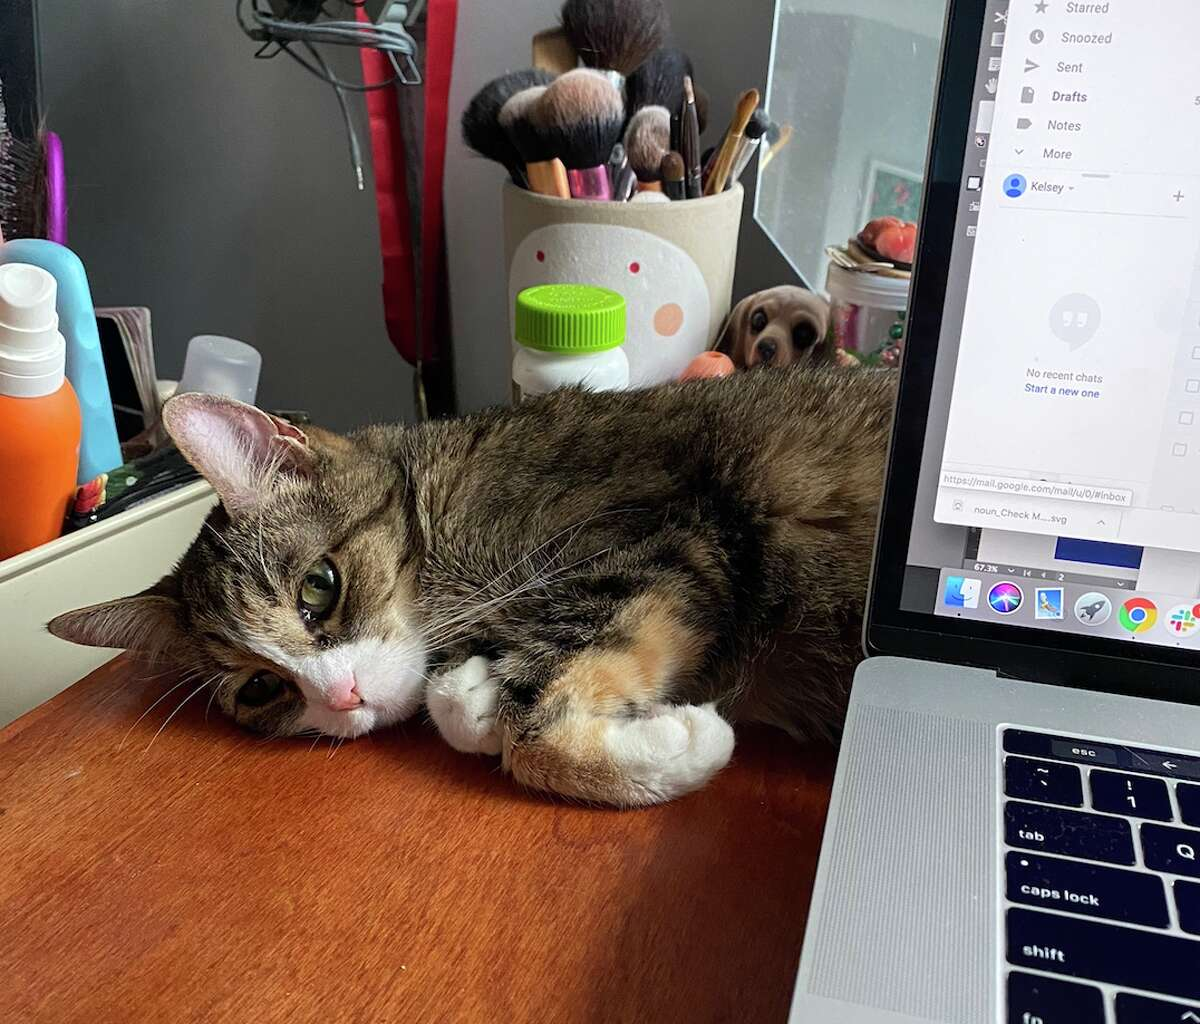 Kelsey, a graphic designer, works from home while her cat Suki lounges on her desk.